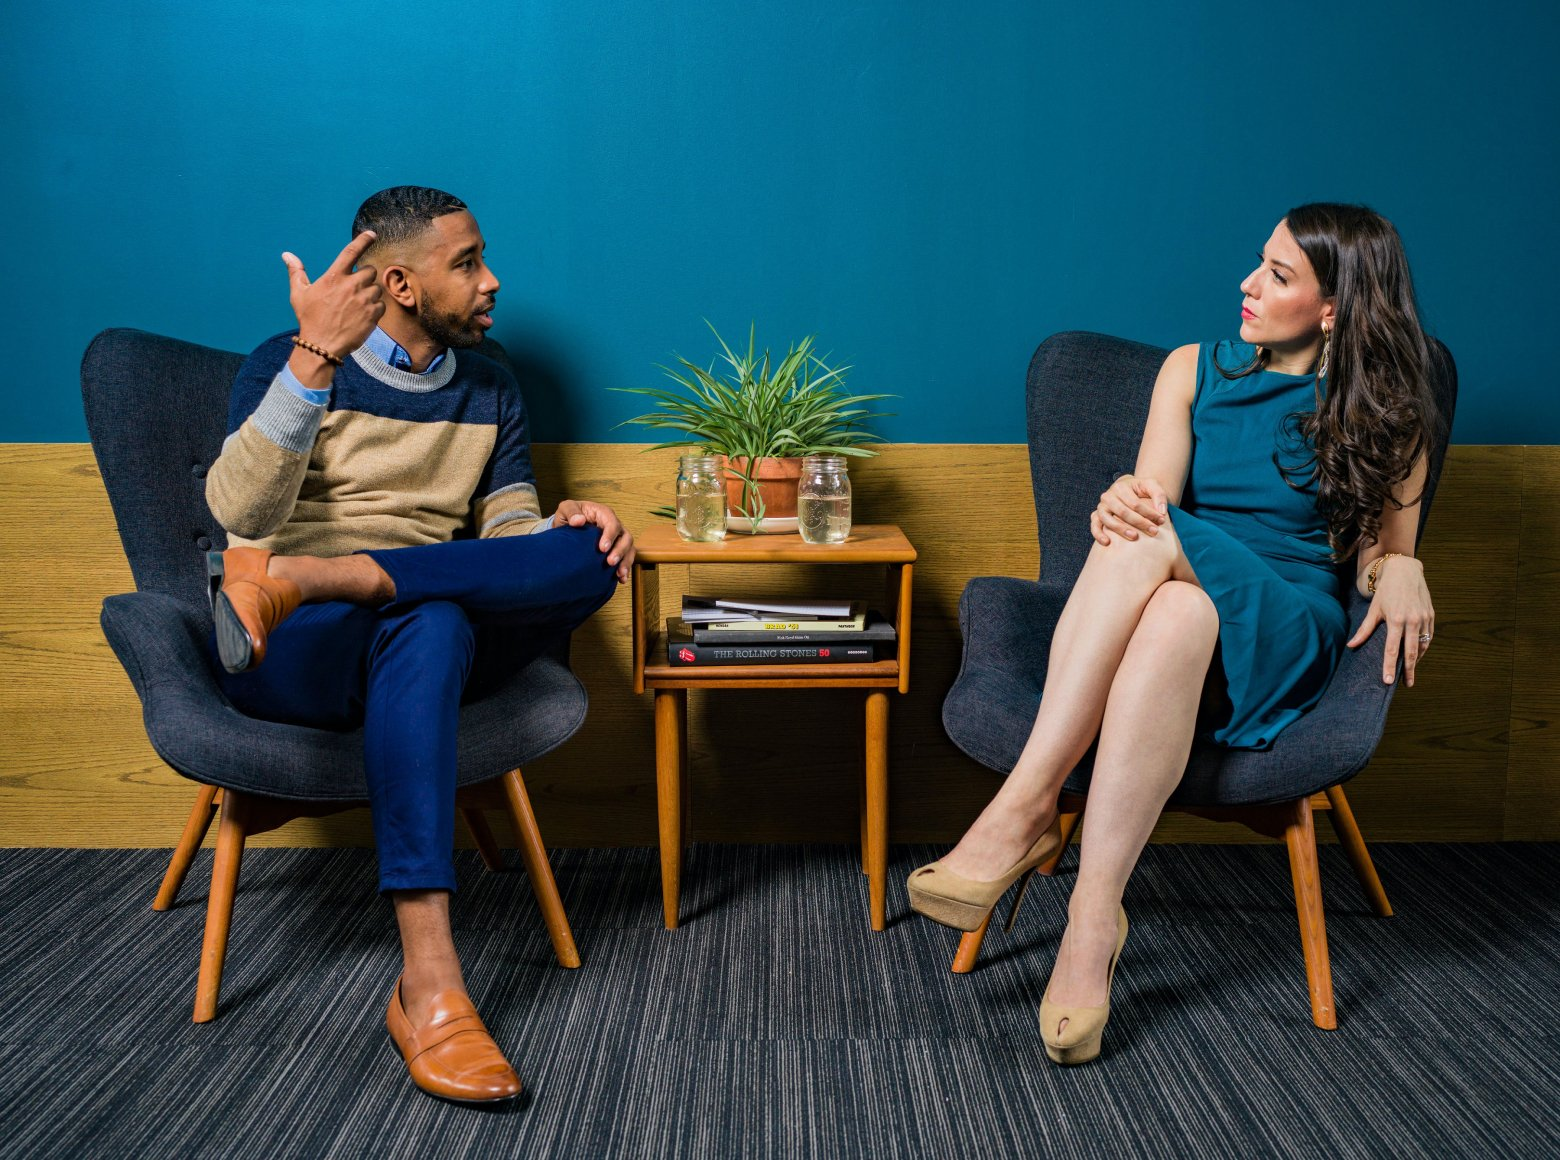 Top 10 interview questions for managers (with sample answers)